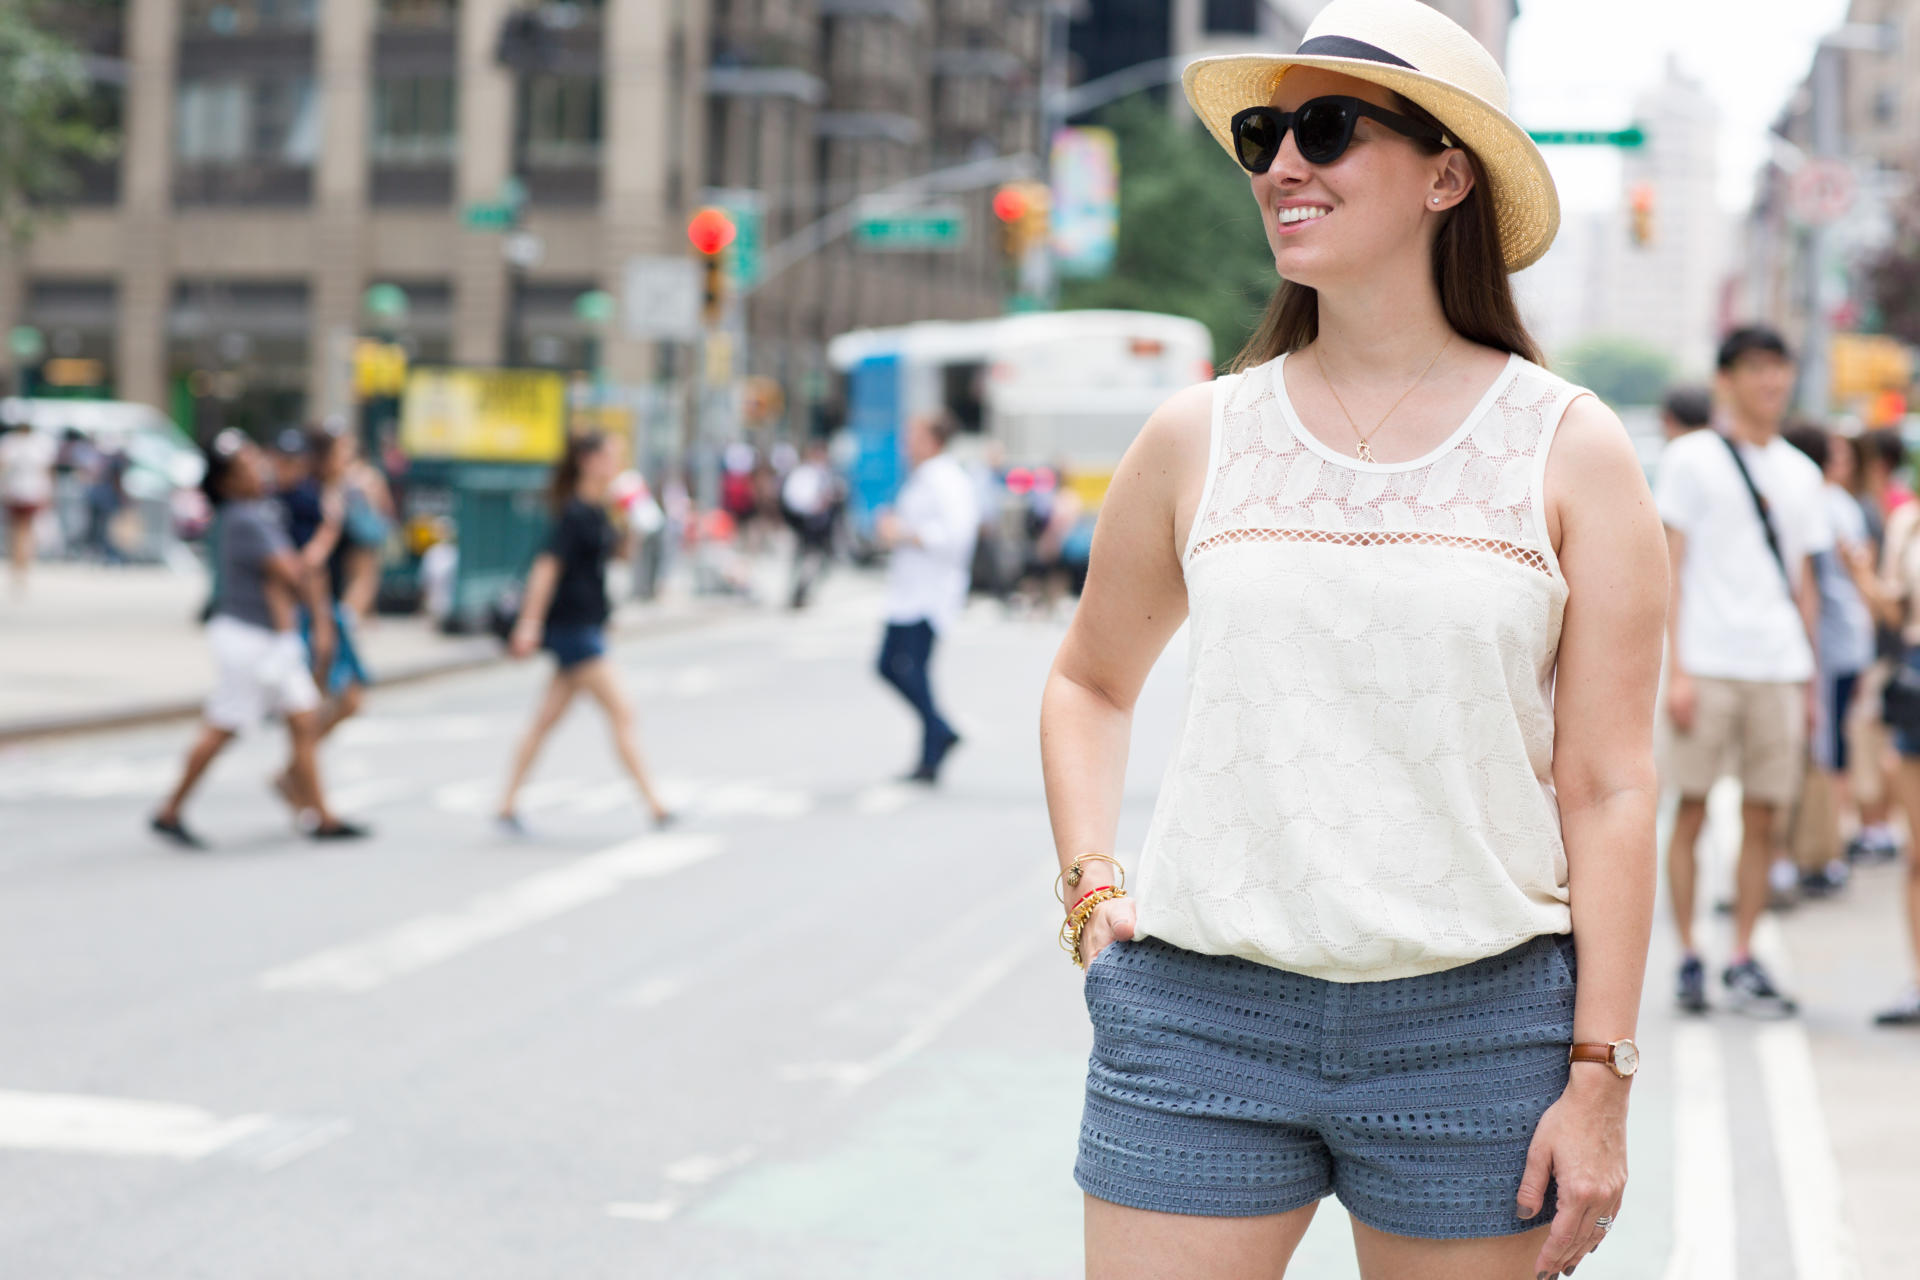 STYLE: A New York City Staycation with Vacay Style